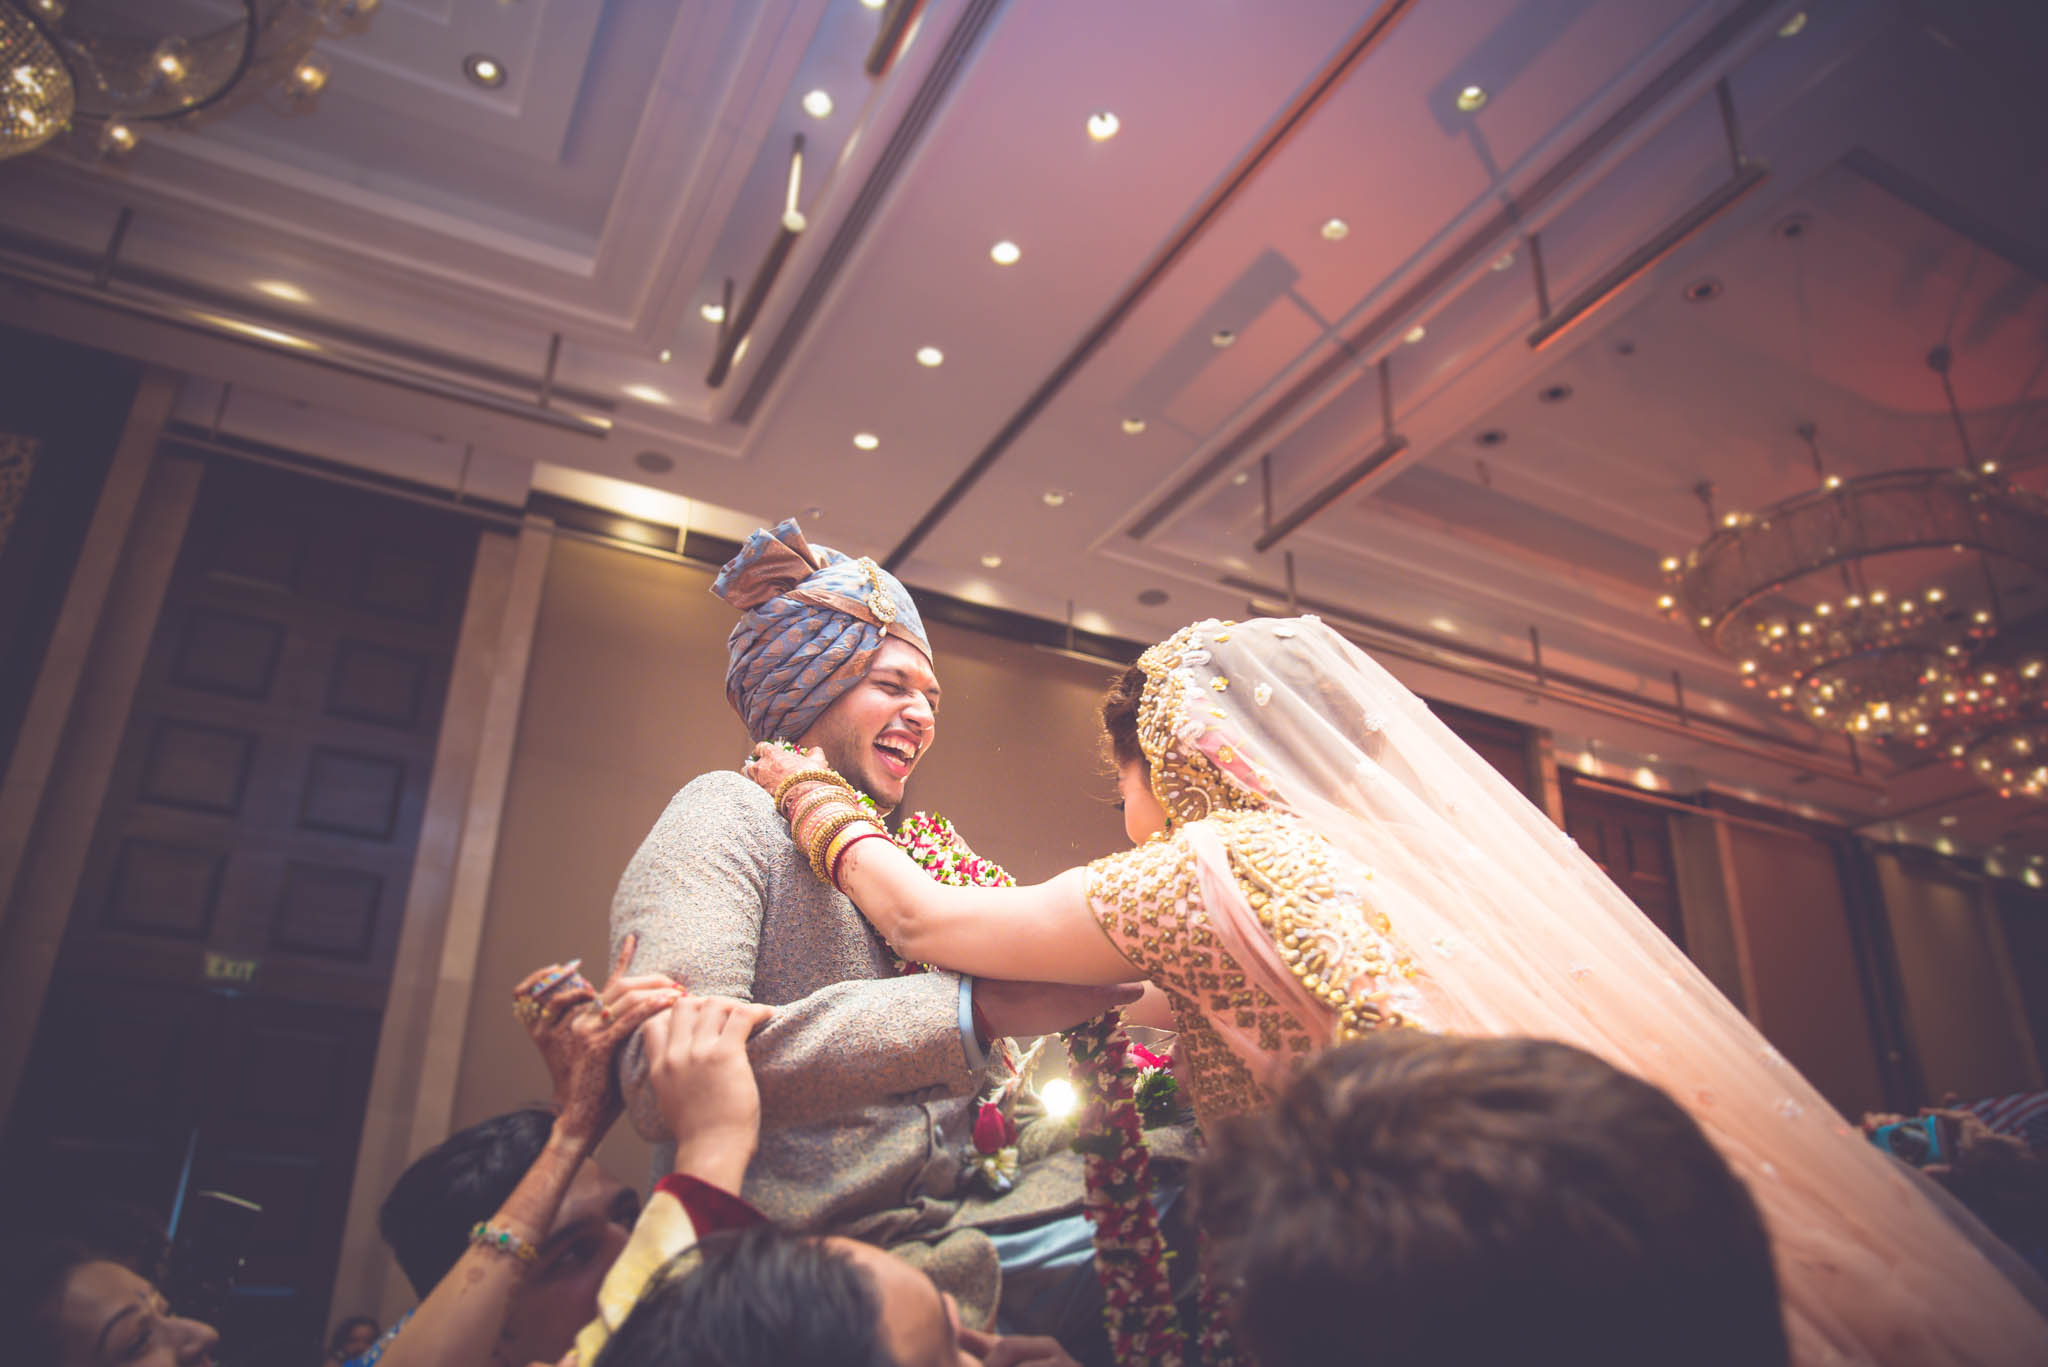 StRegis-Palladium-Mumbai-Candid-Wedding-Photography-34